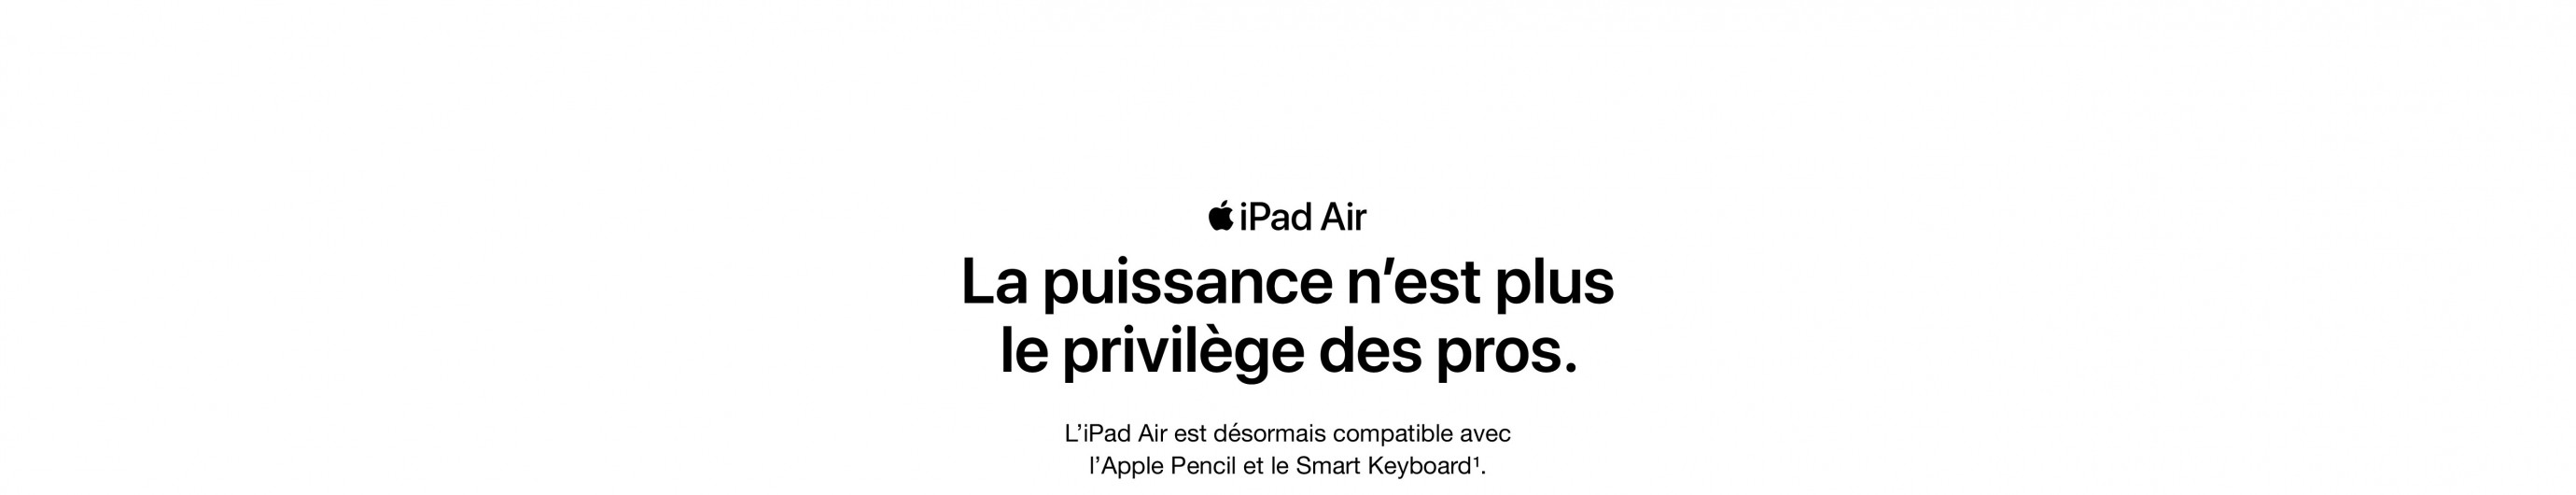 Productpage---iPad-Air-2019-fr_03.jpg